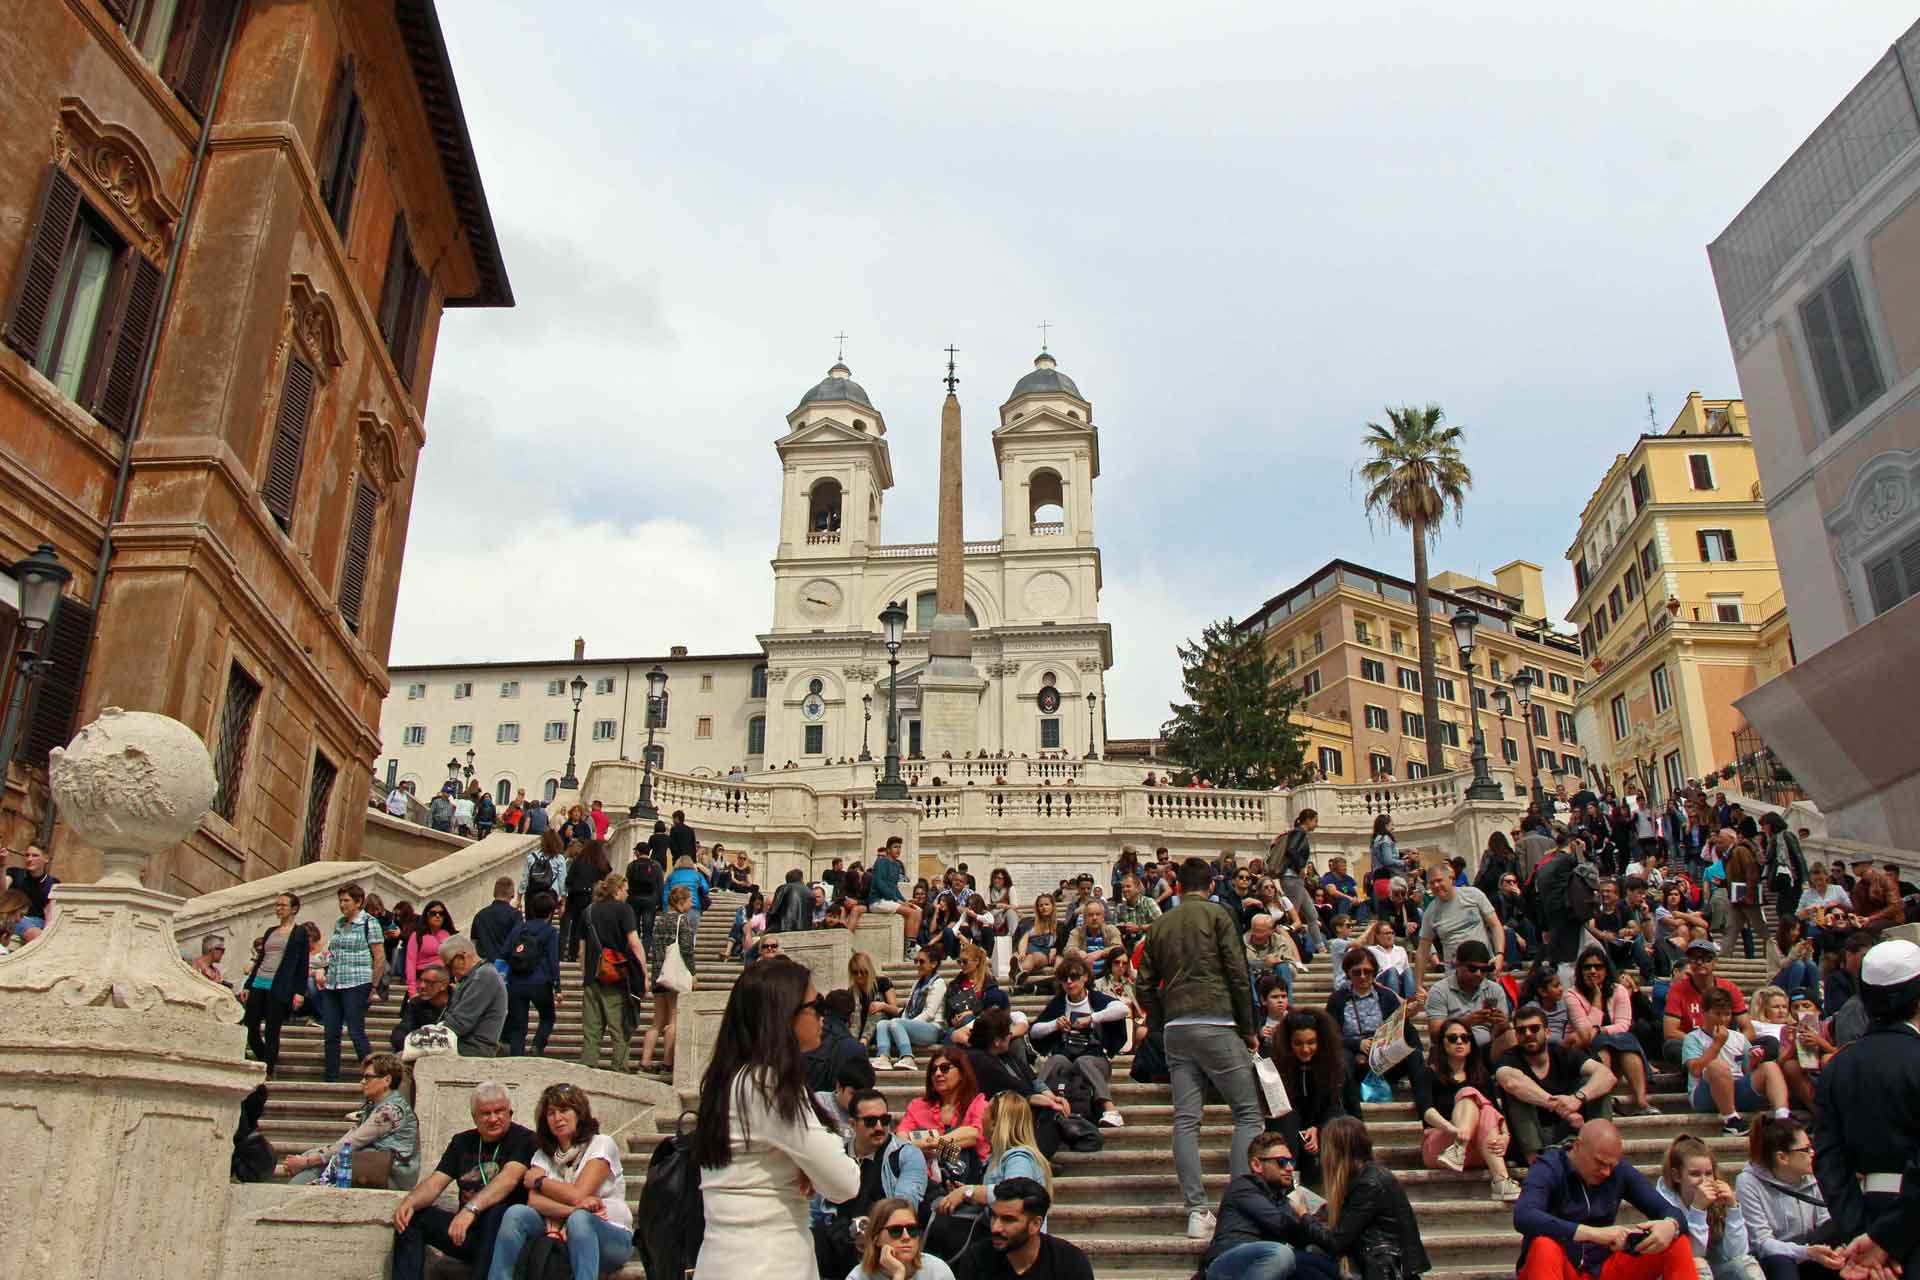 The Spanish Steps are often very busy.